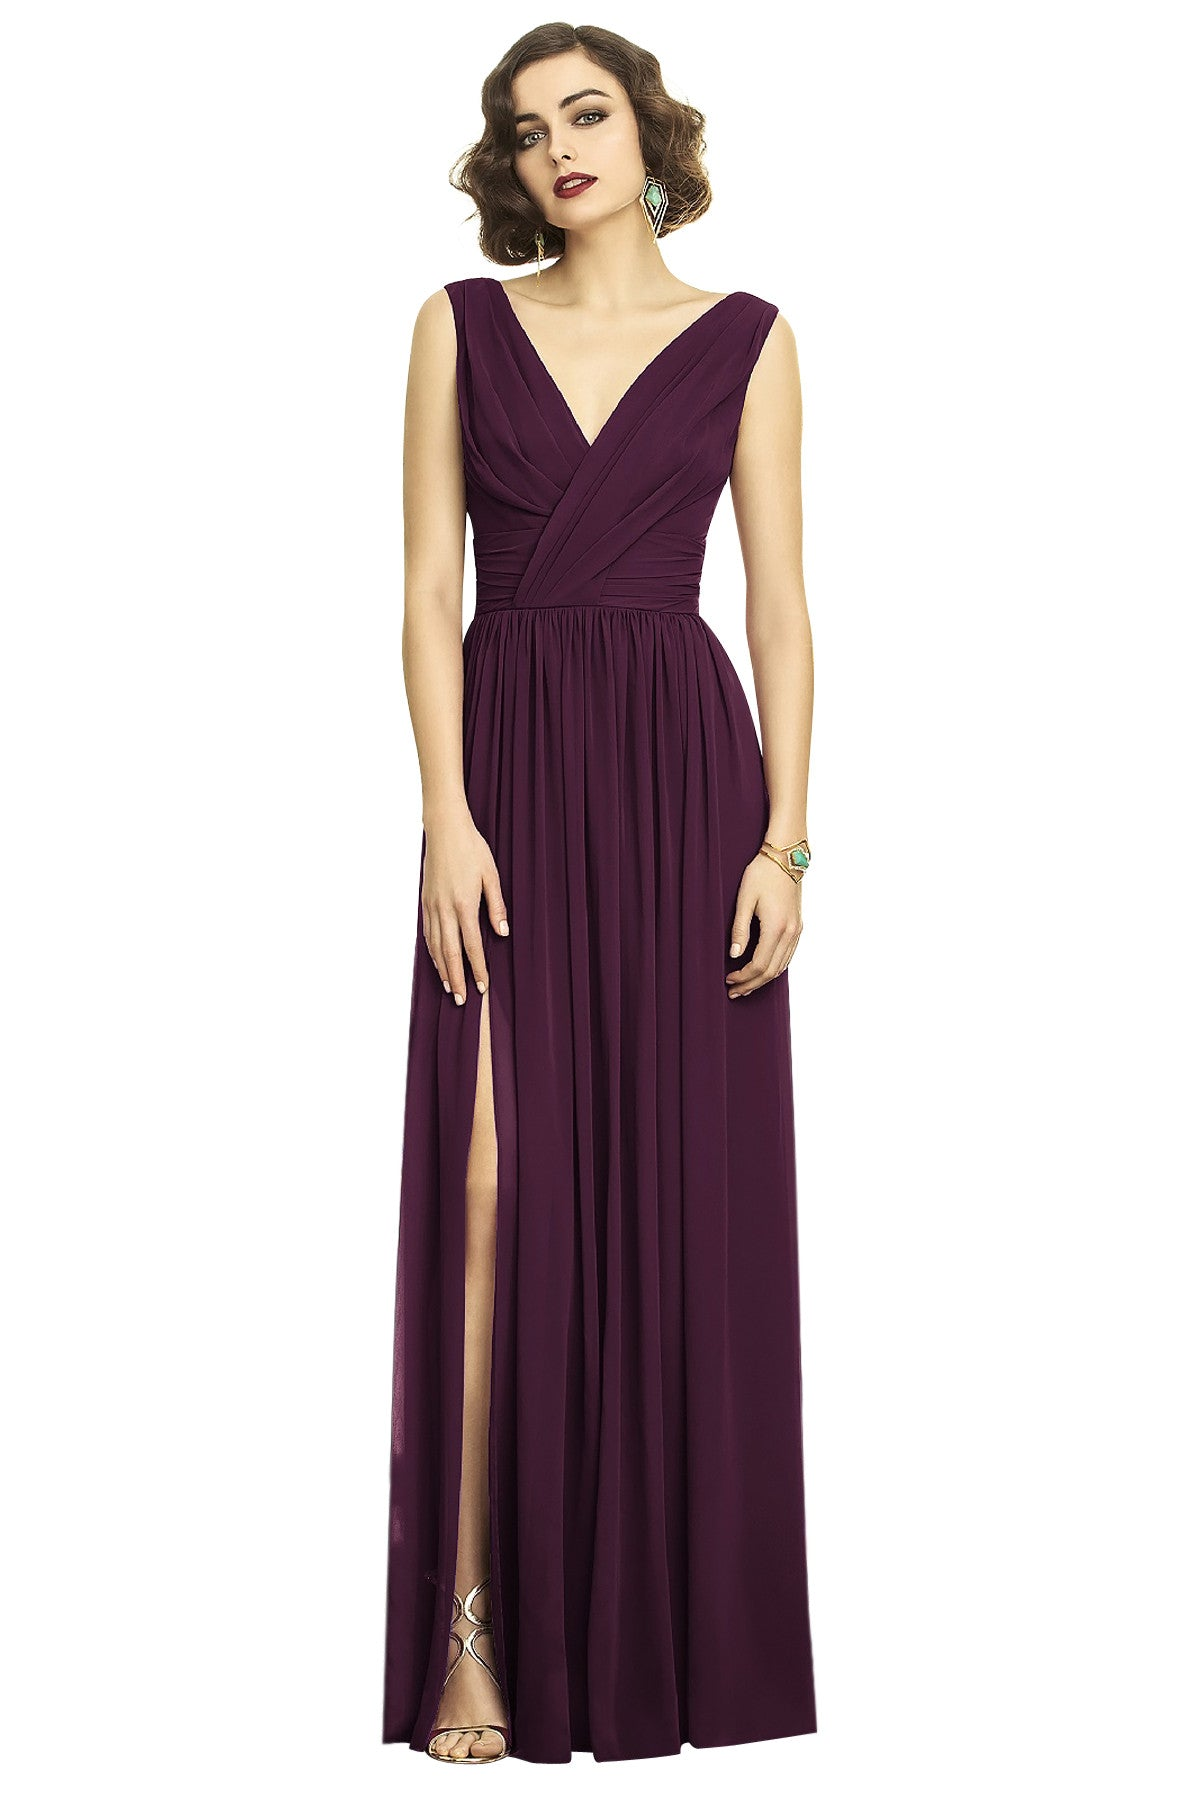 Dessy 2894 bridesmaid dress weddings by lo dessy 2894 long v neck bridesmaid dress ombrellifo Image collections